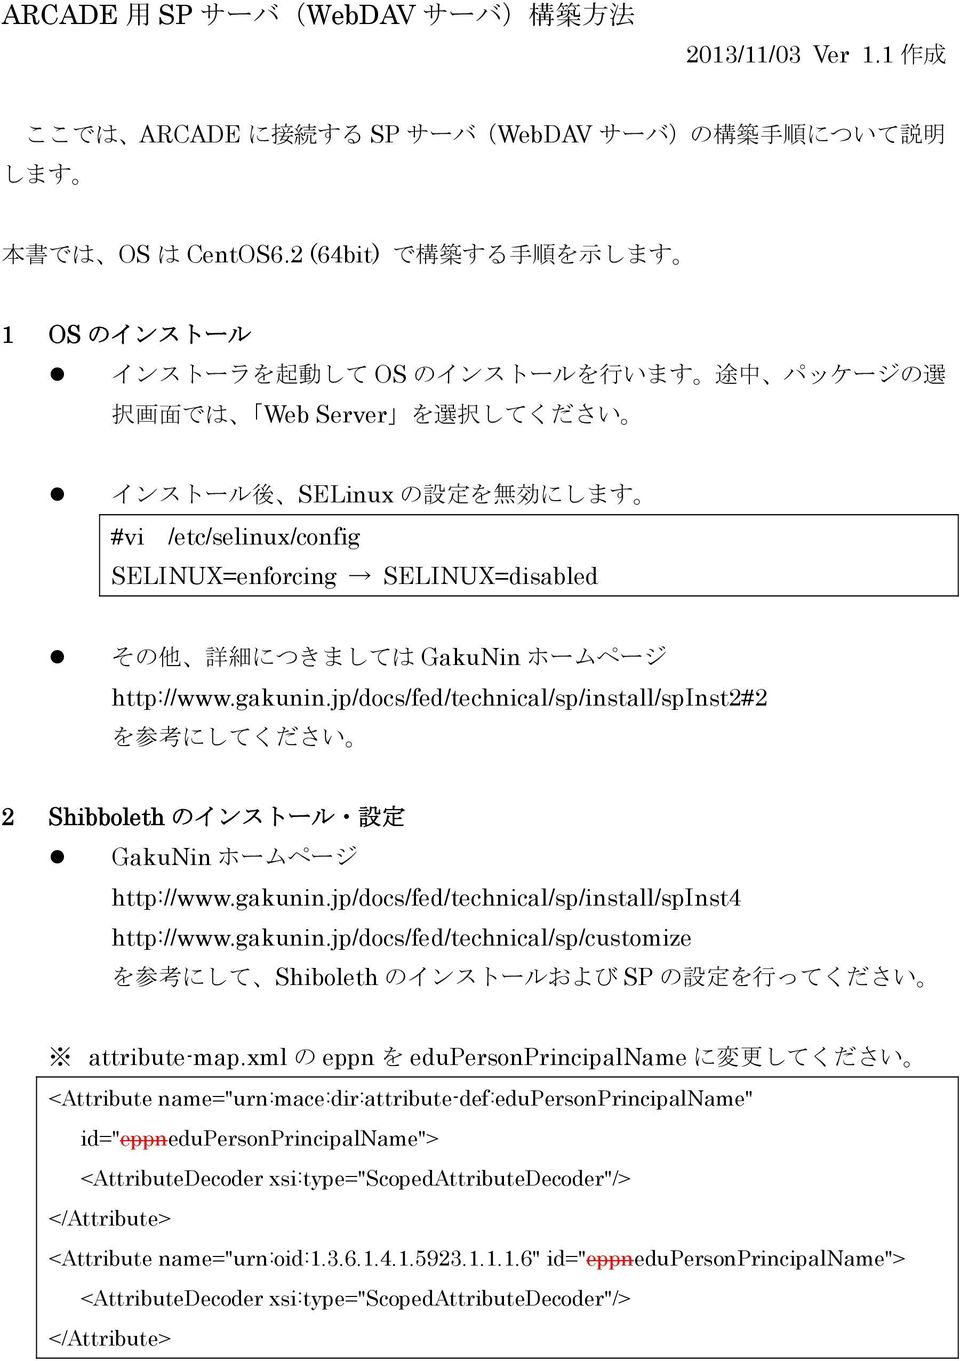 SELINUX=disabled その 他 詳 細 につきましては GakuNin ホームページ http://www.gakunin.jp/docs/fed/technical/sp/install/spinst22 を 参 考 にしてください 2 Shibboleth のインストール 設 定 GakuNin ホームページ http://www.gakunin.jp/docs/fed/technical/sp/install/spinst4 http://www.